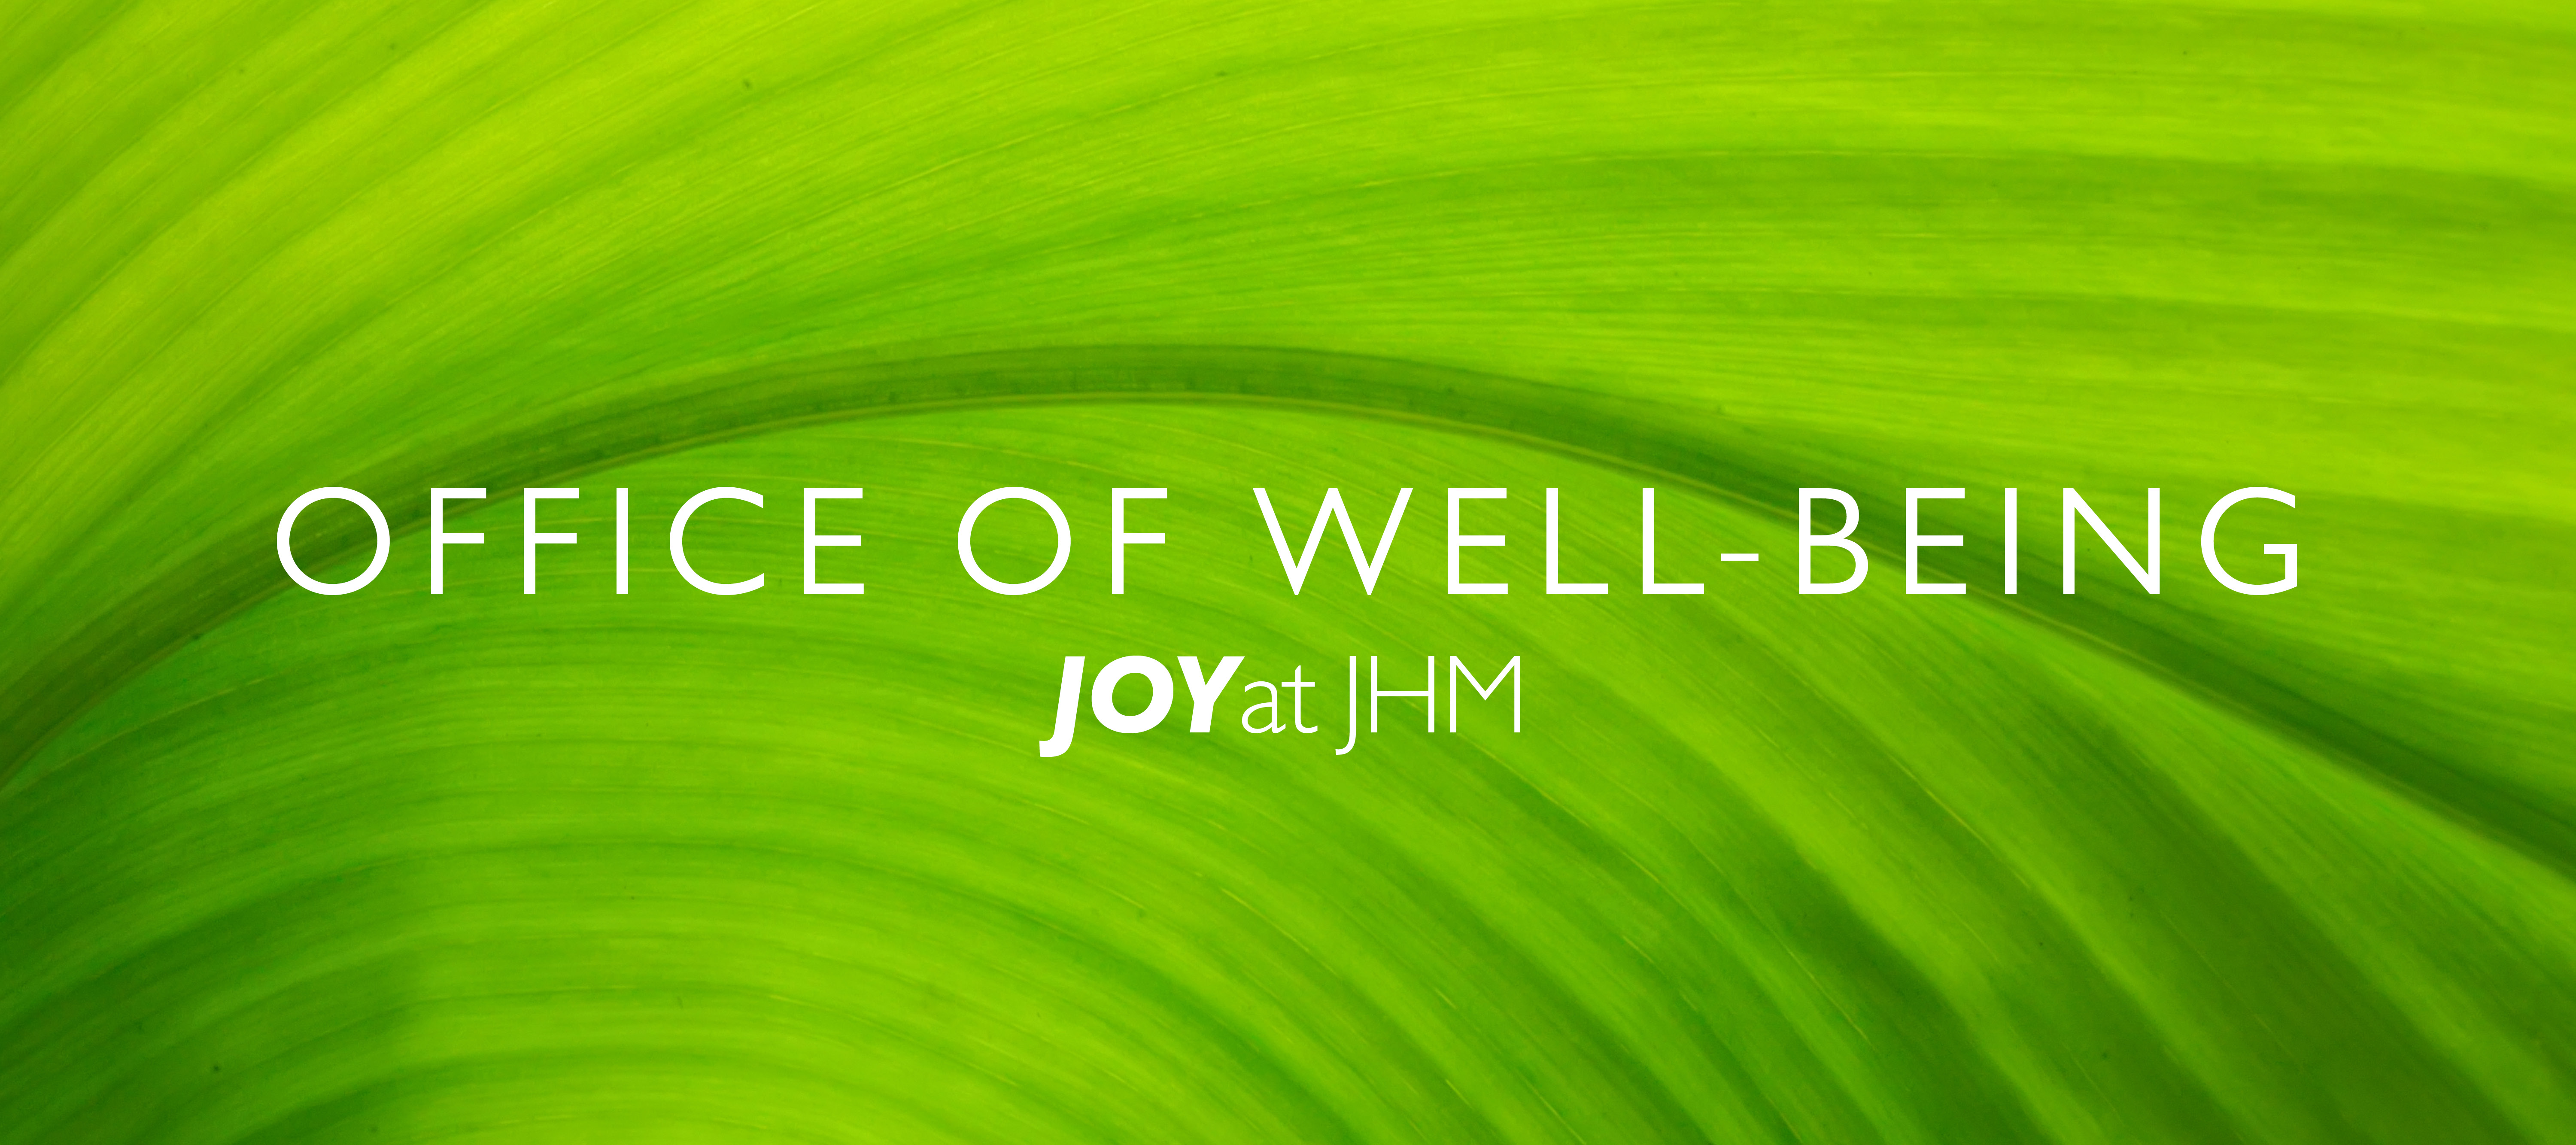 office of well being logo